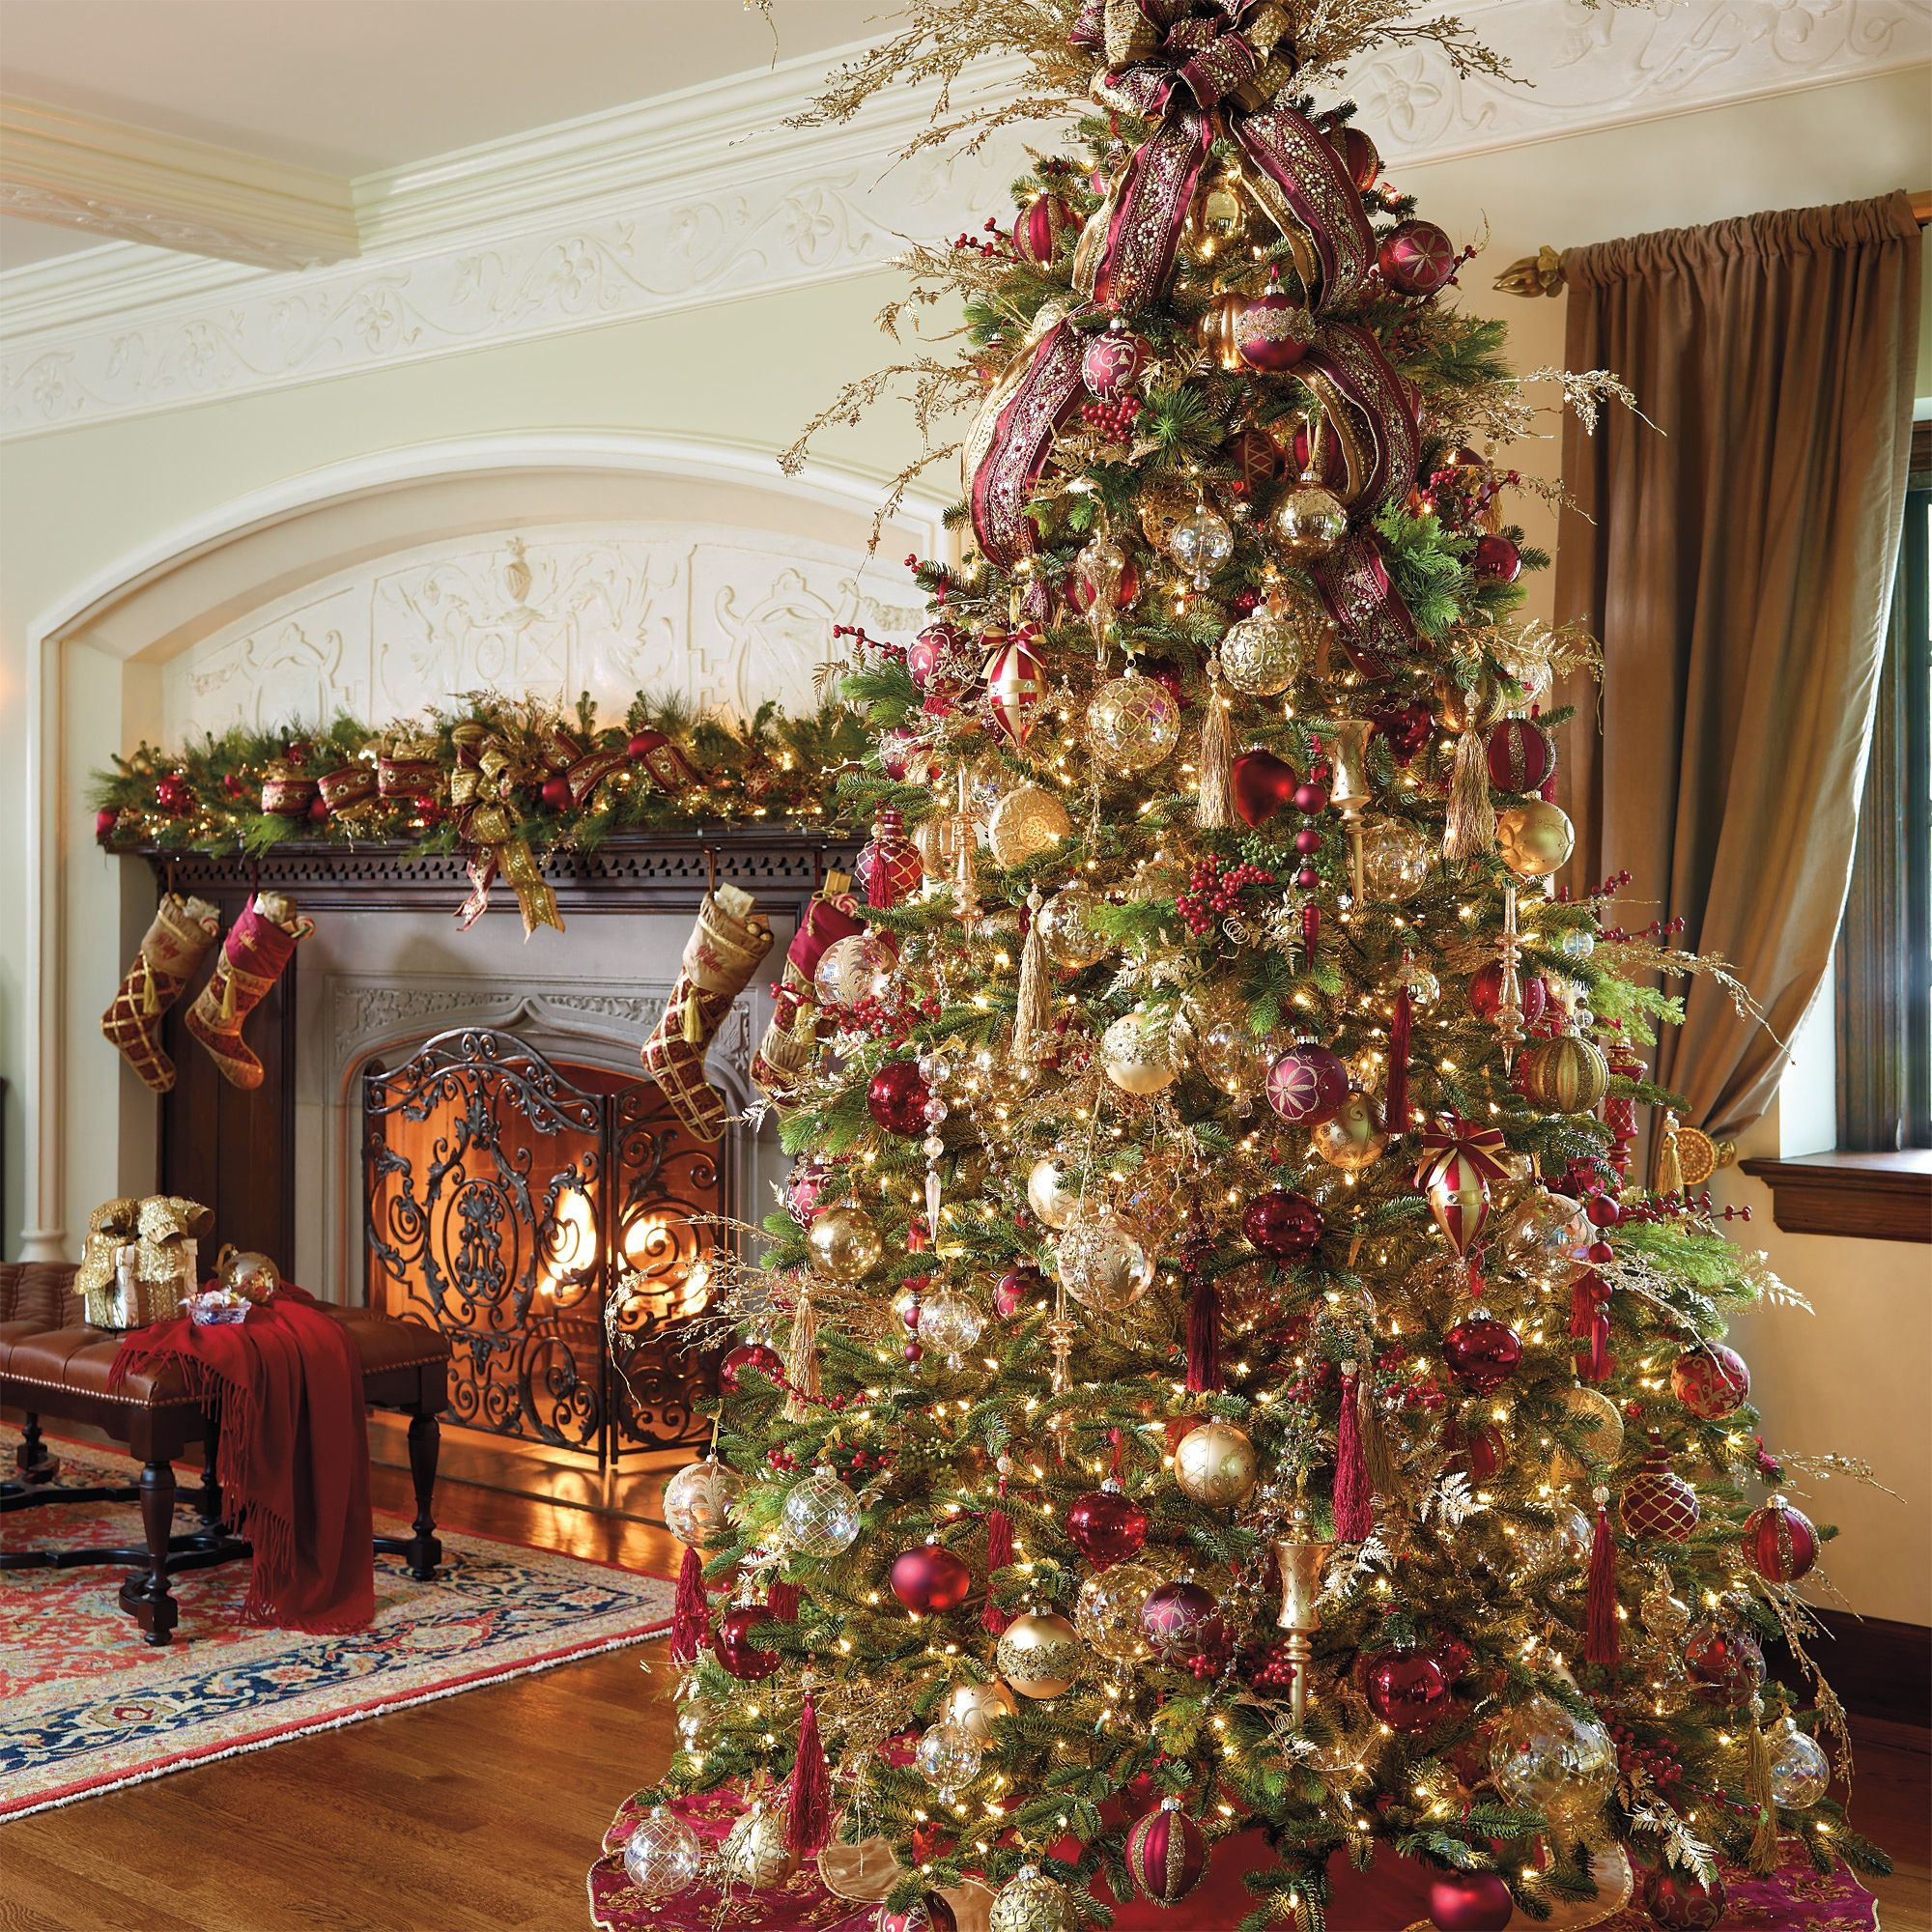 Beautiful Christmas Trees: We'd Keep The Season Dressed In Traditional Burgundy And